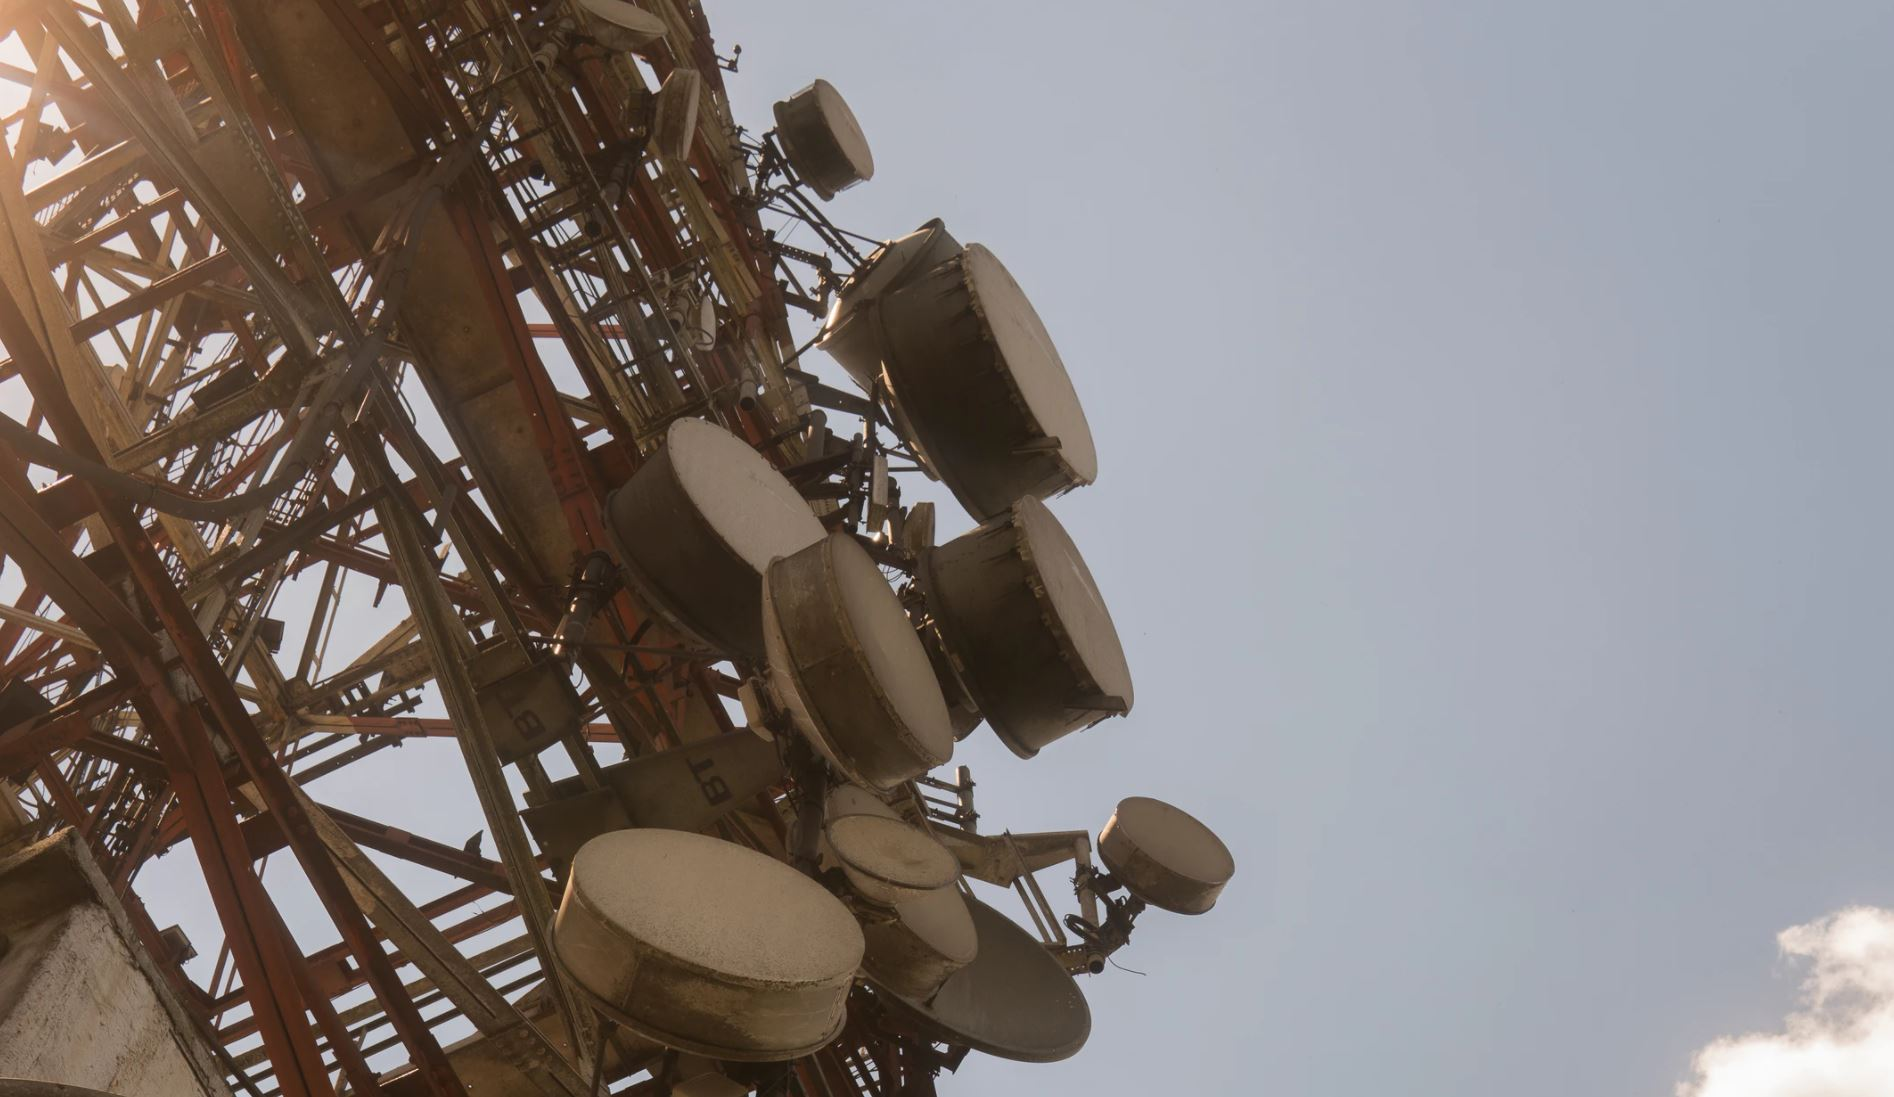 The Romanian draft law on 5G technology under strong criticism from both public authorities and private stakeholders